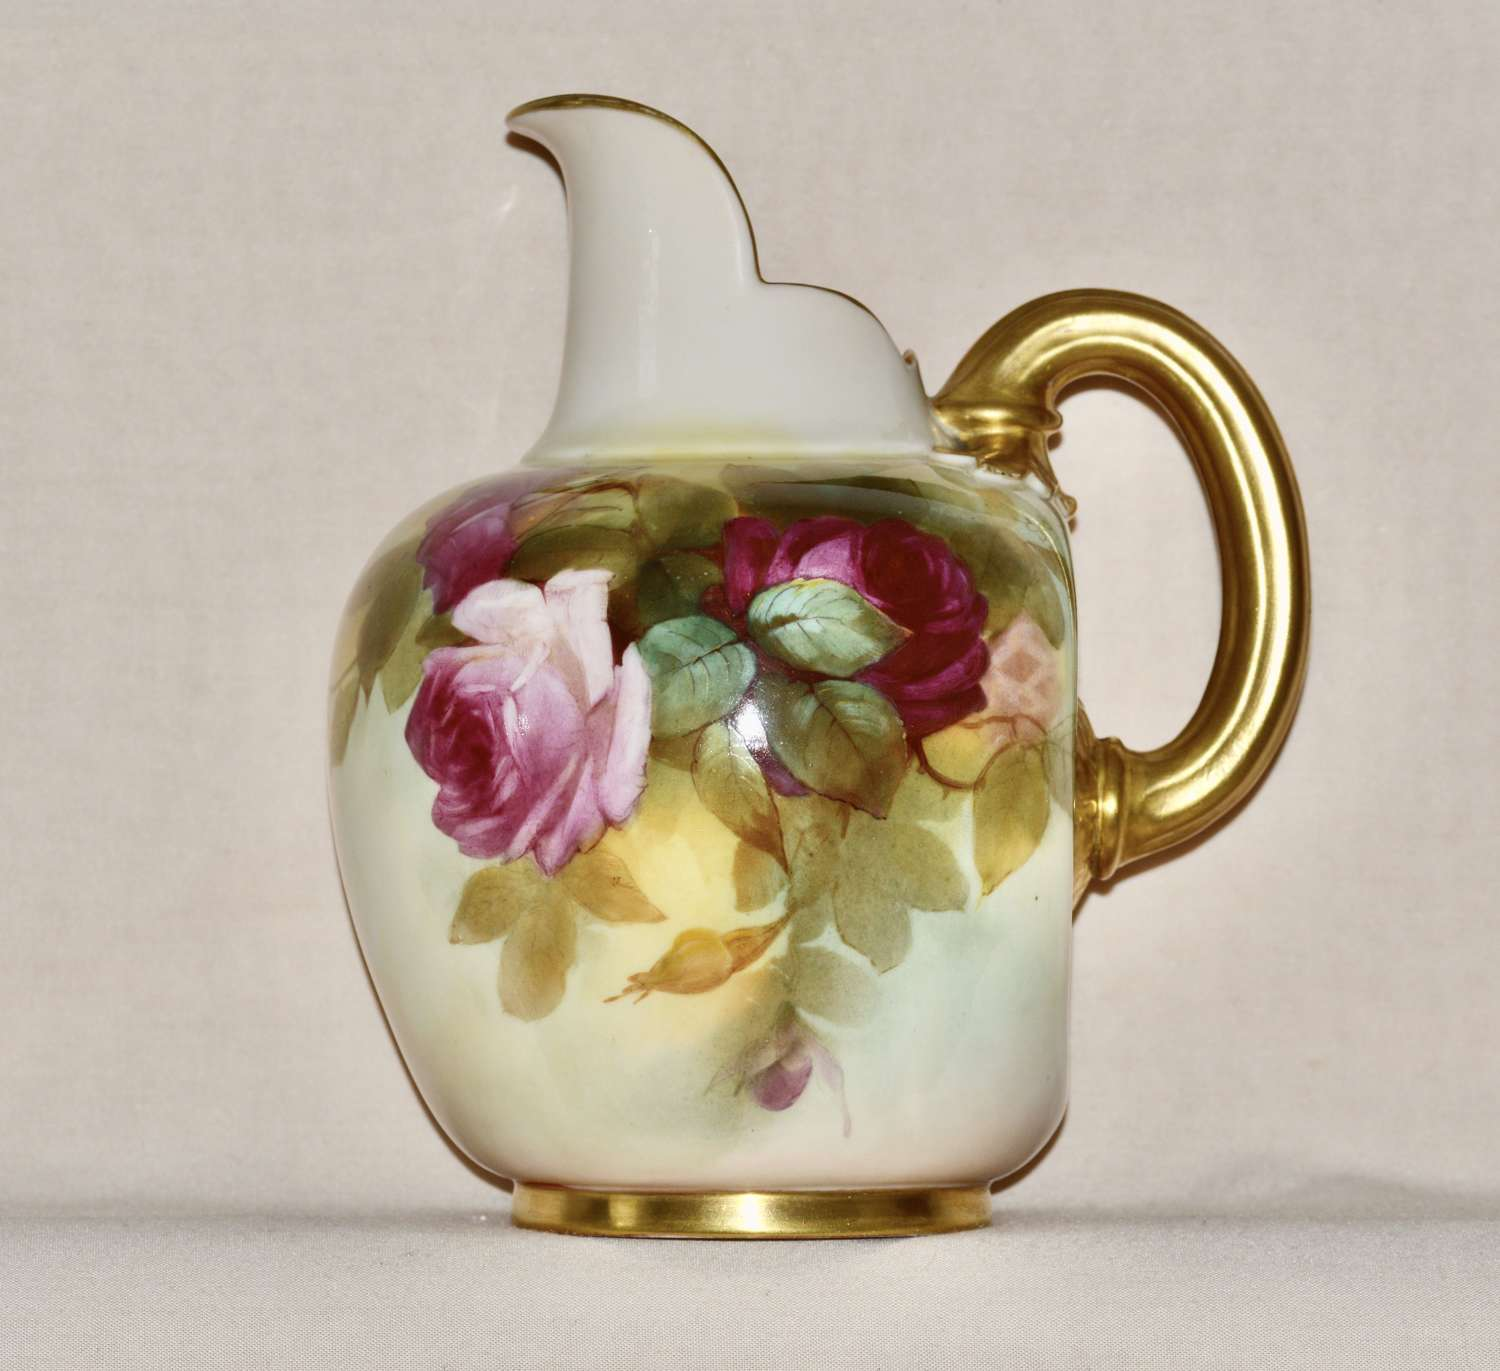 An 1887 Large Royal Worcester Porcelain Ewer